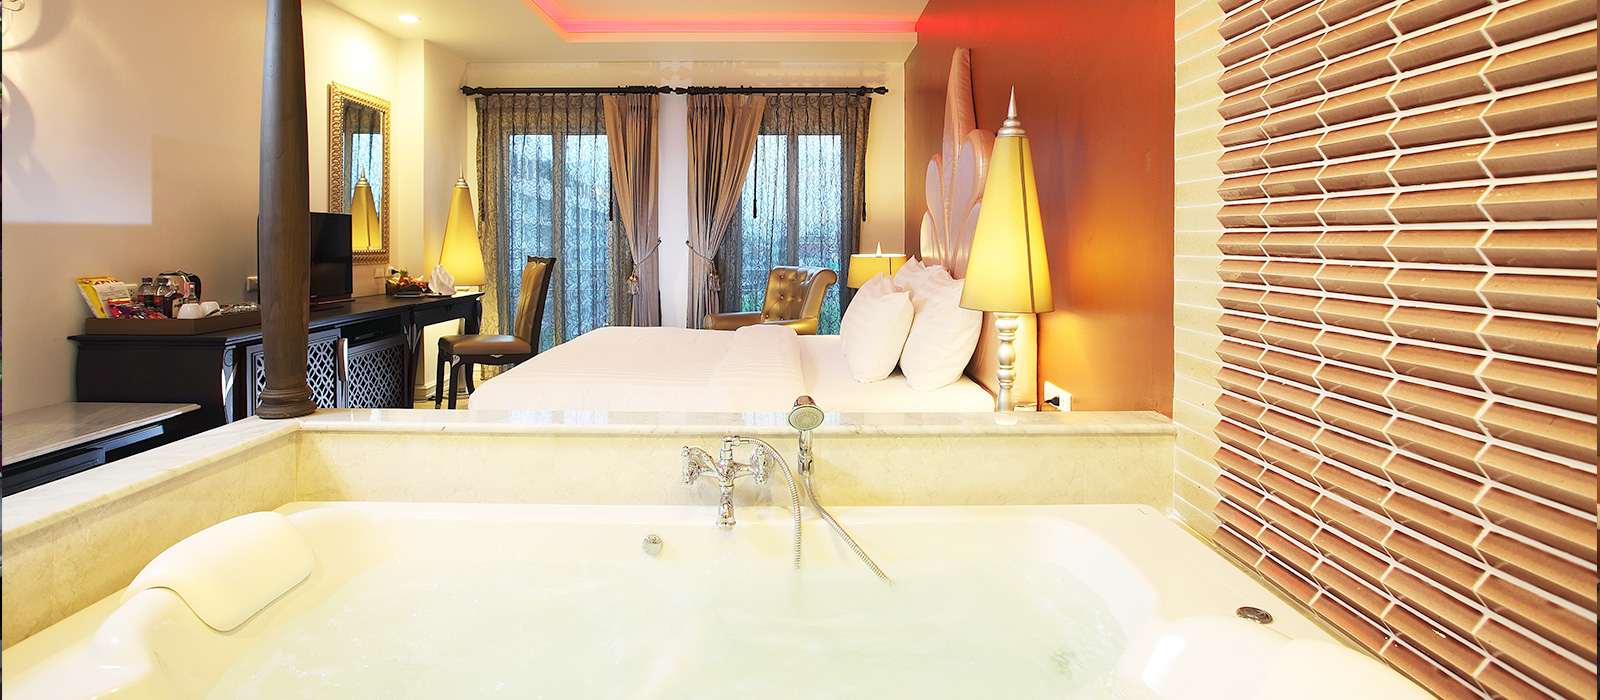 romantic resort in bangkok with deluxe room type and private jacuzzi